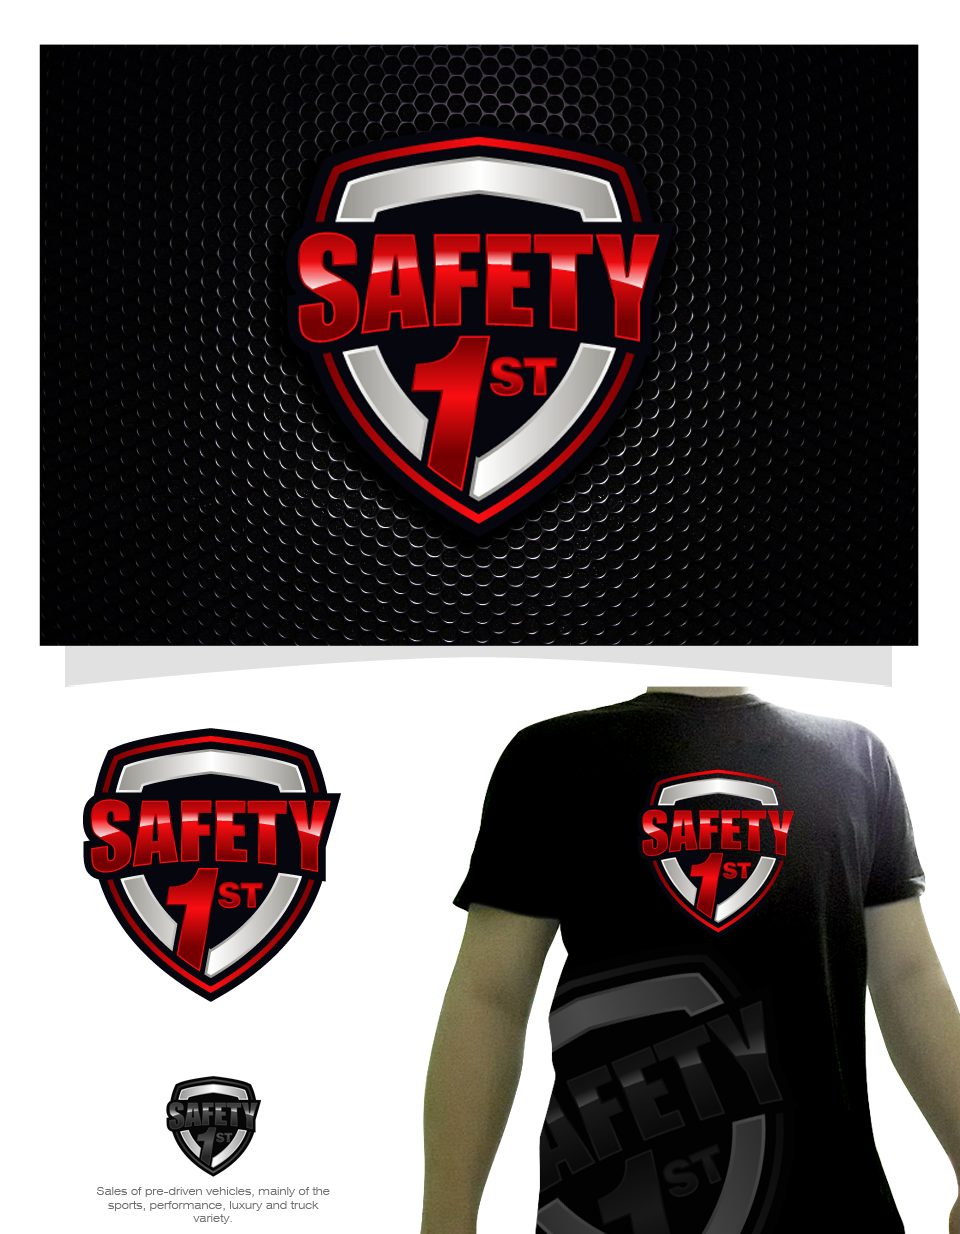 Safety 1st logo for visibility on our nation's highways!